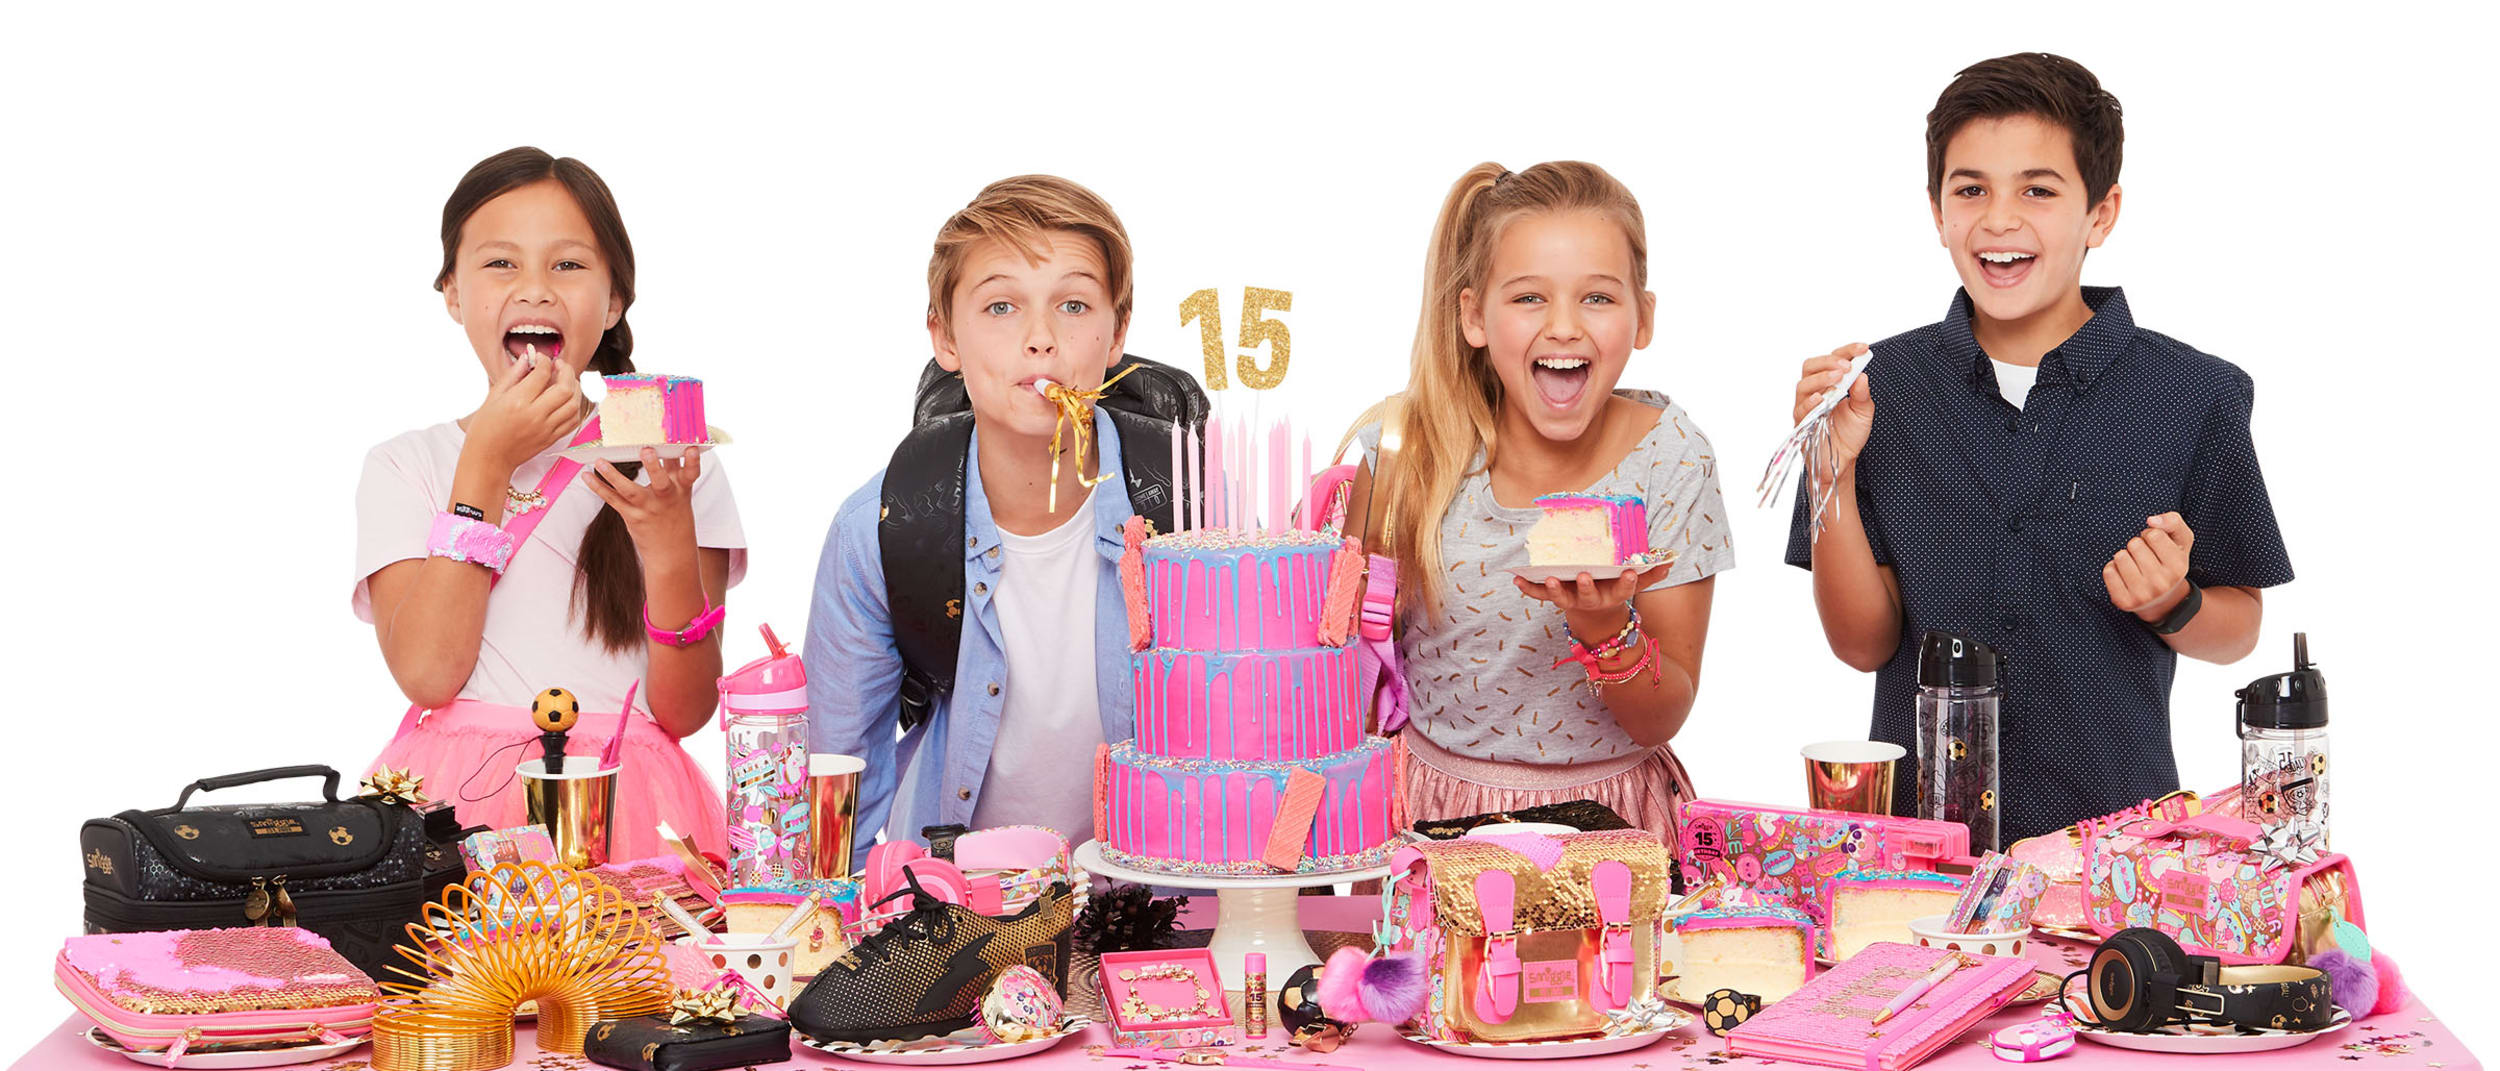 Smiggle is celebrating 15 years of sharing smiles and giggles